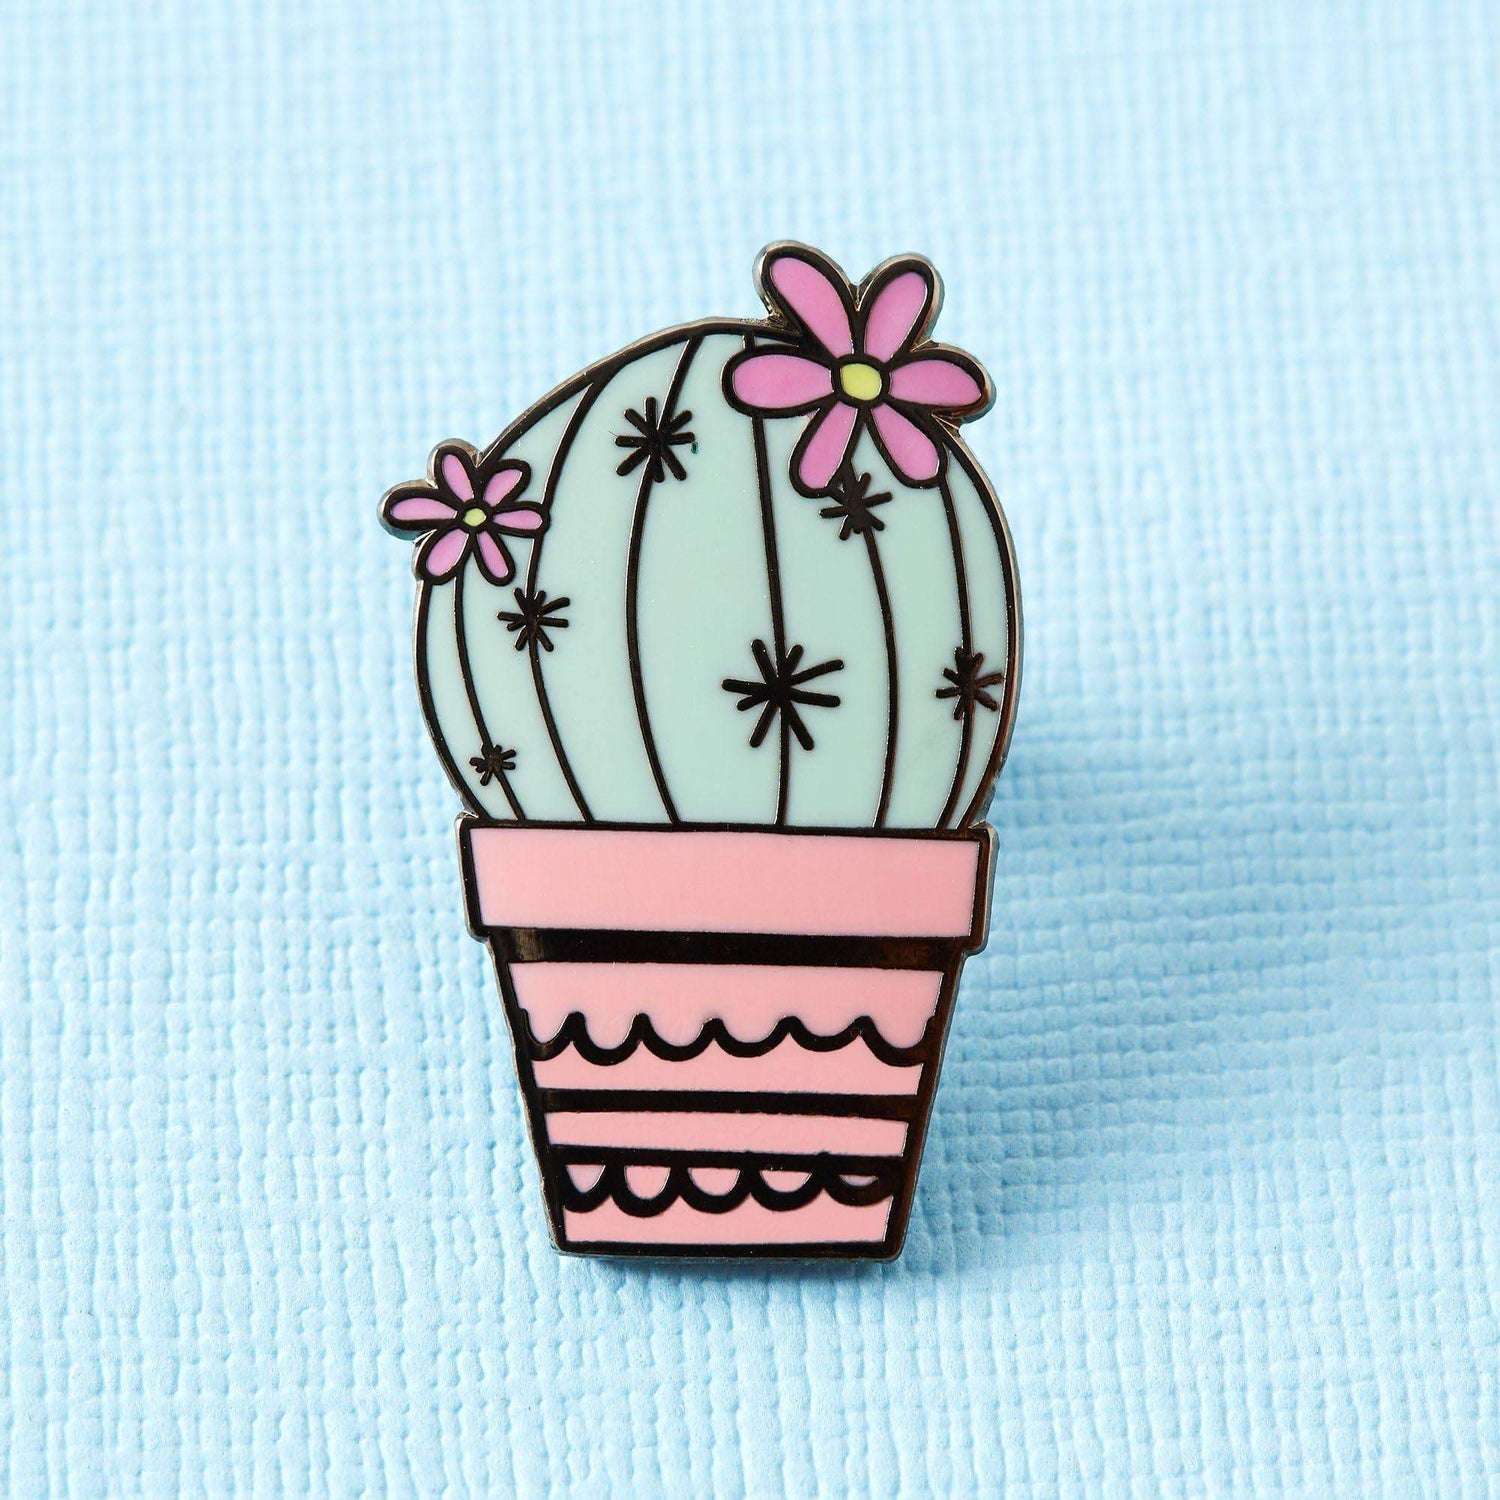 Punky Pins Pincushion Cactus Enamel Pin